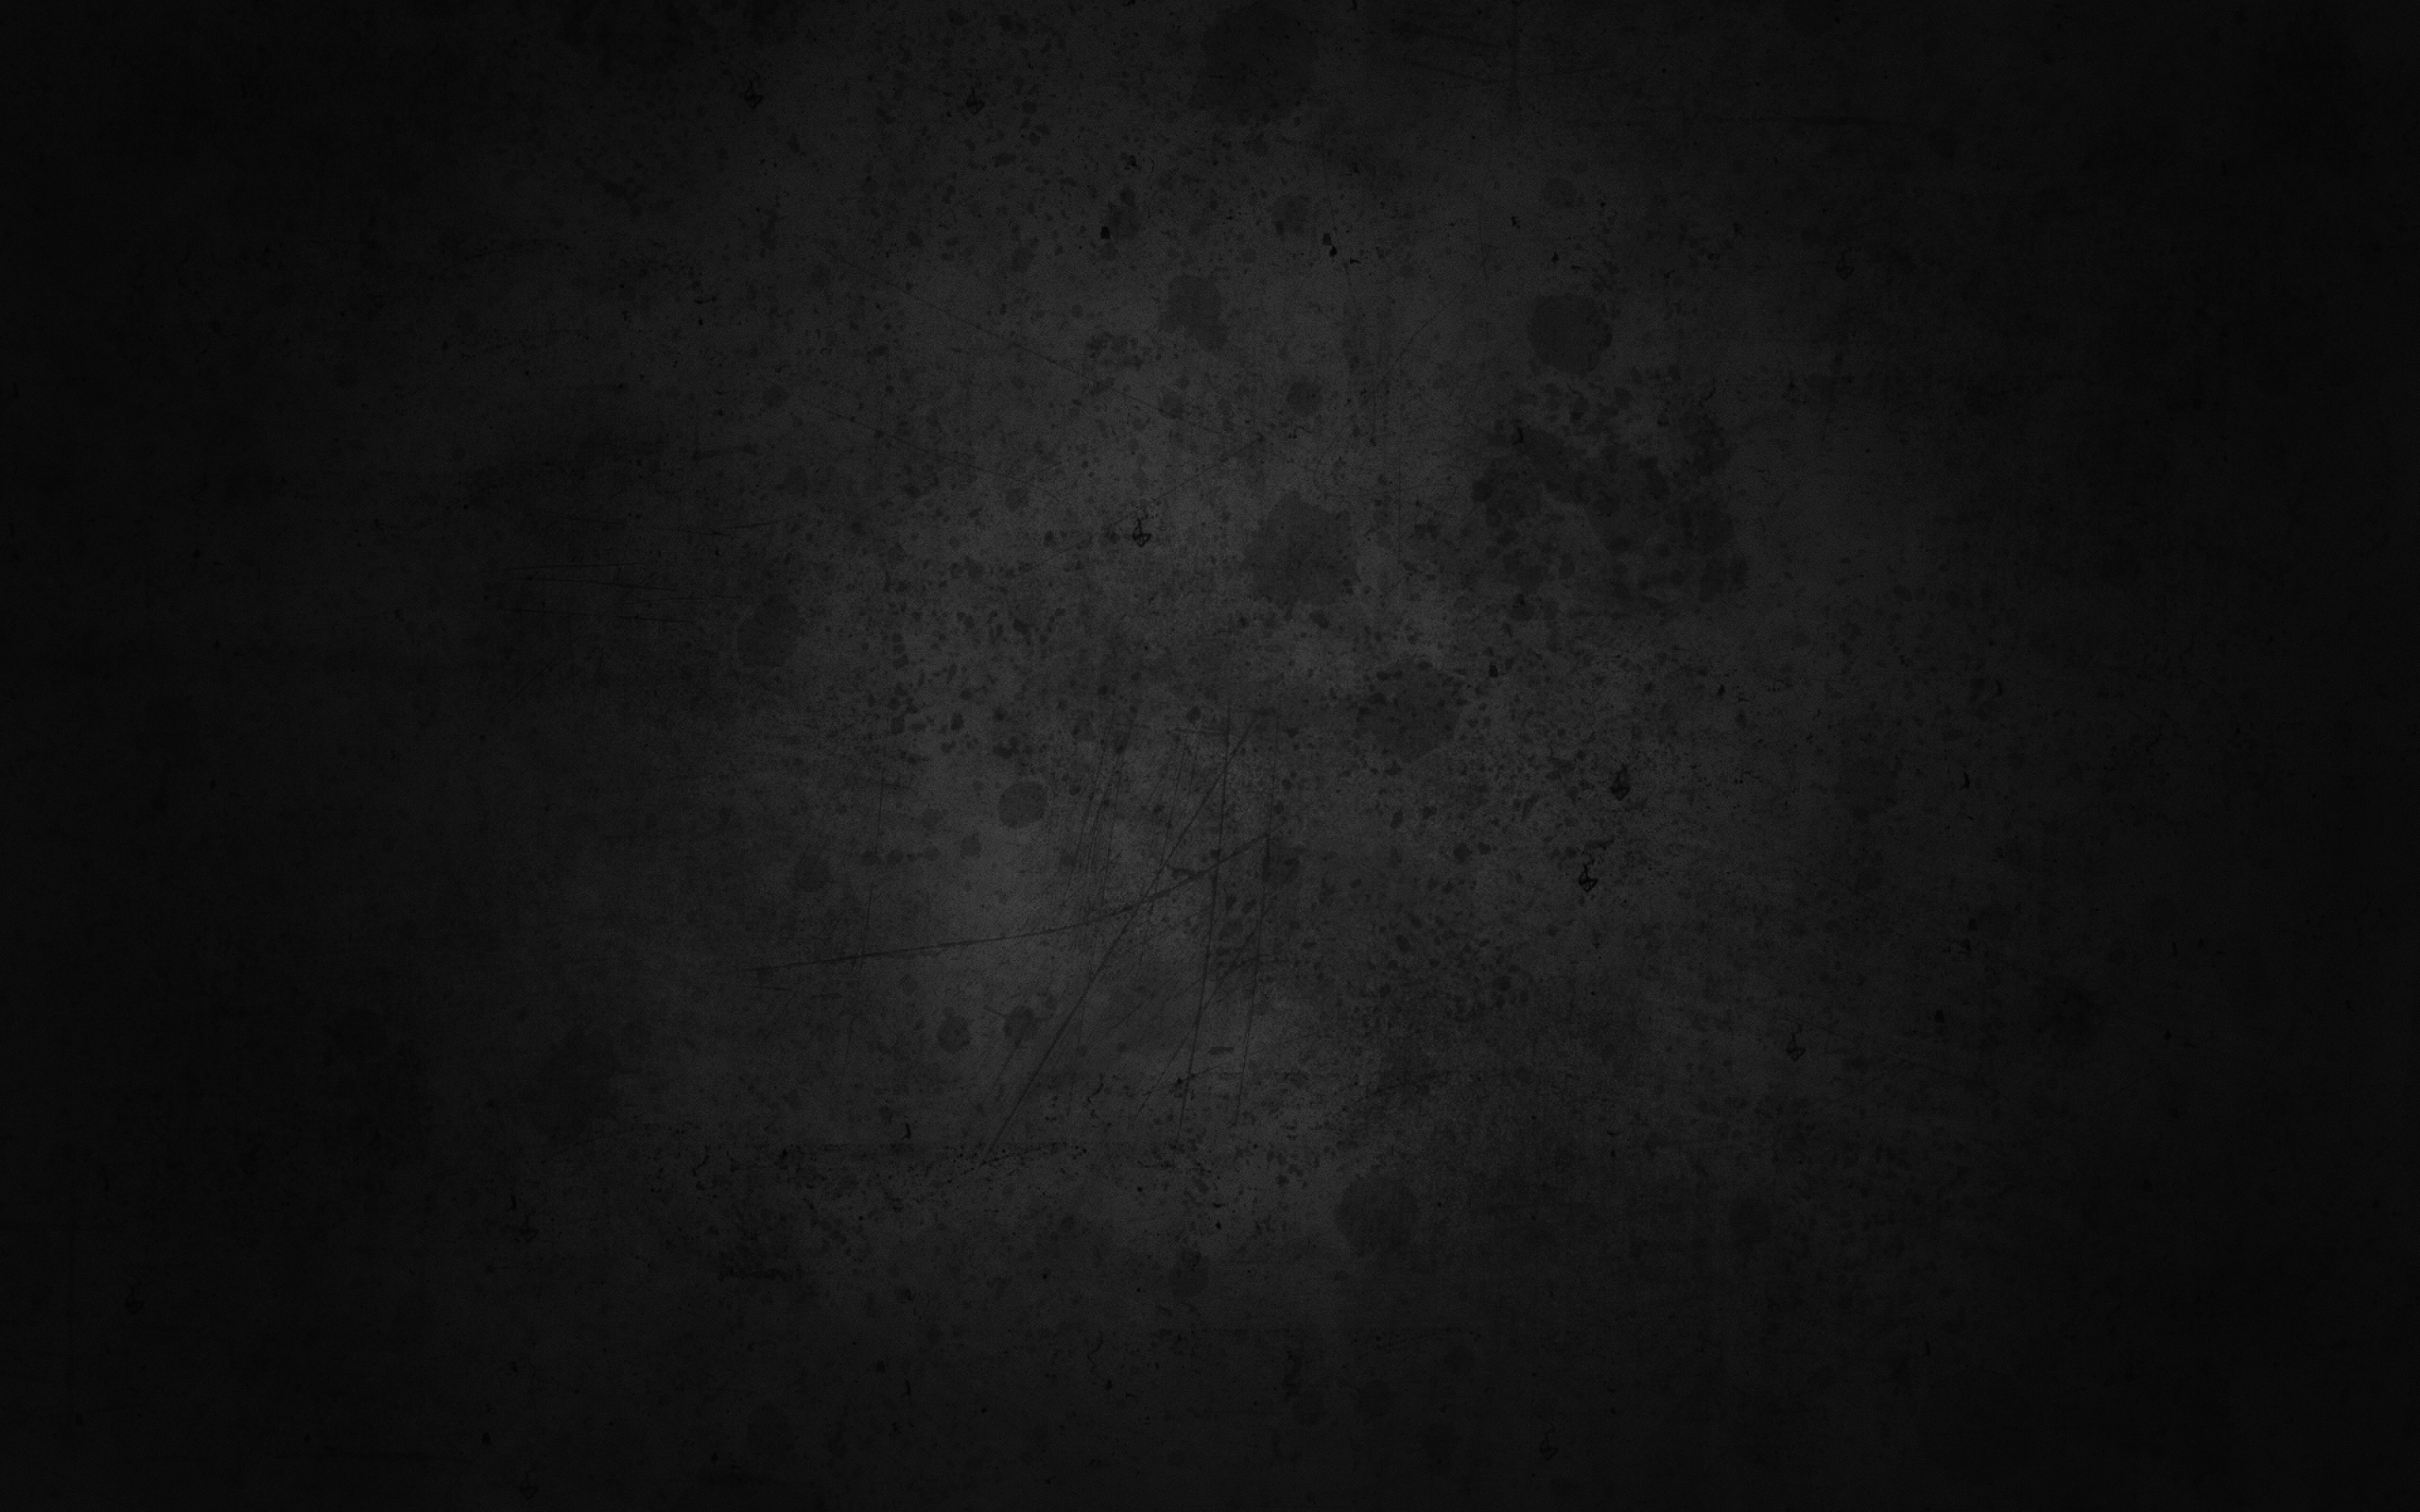 50 Black Wallpaper In FHD For Download For Android 2560x1600